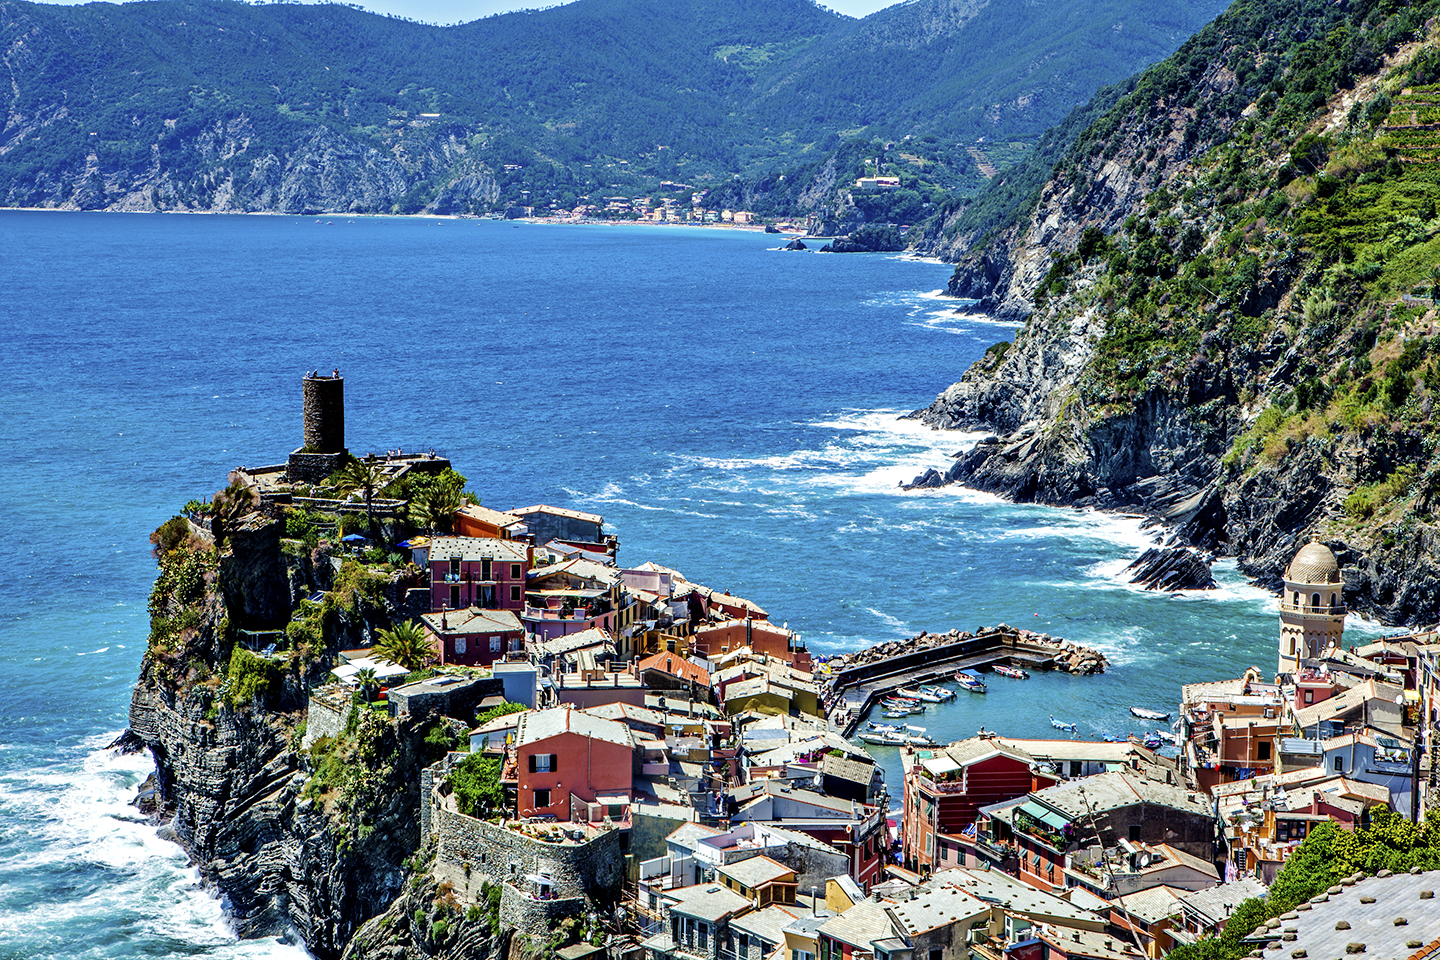 the tip of vernazza